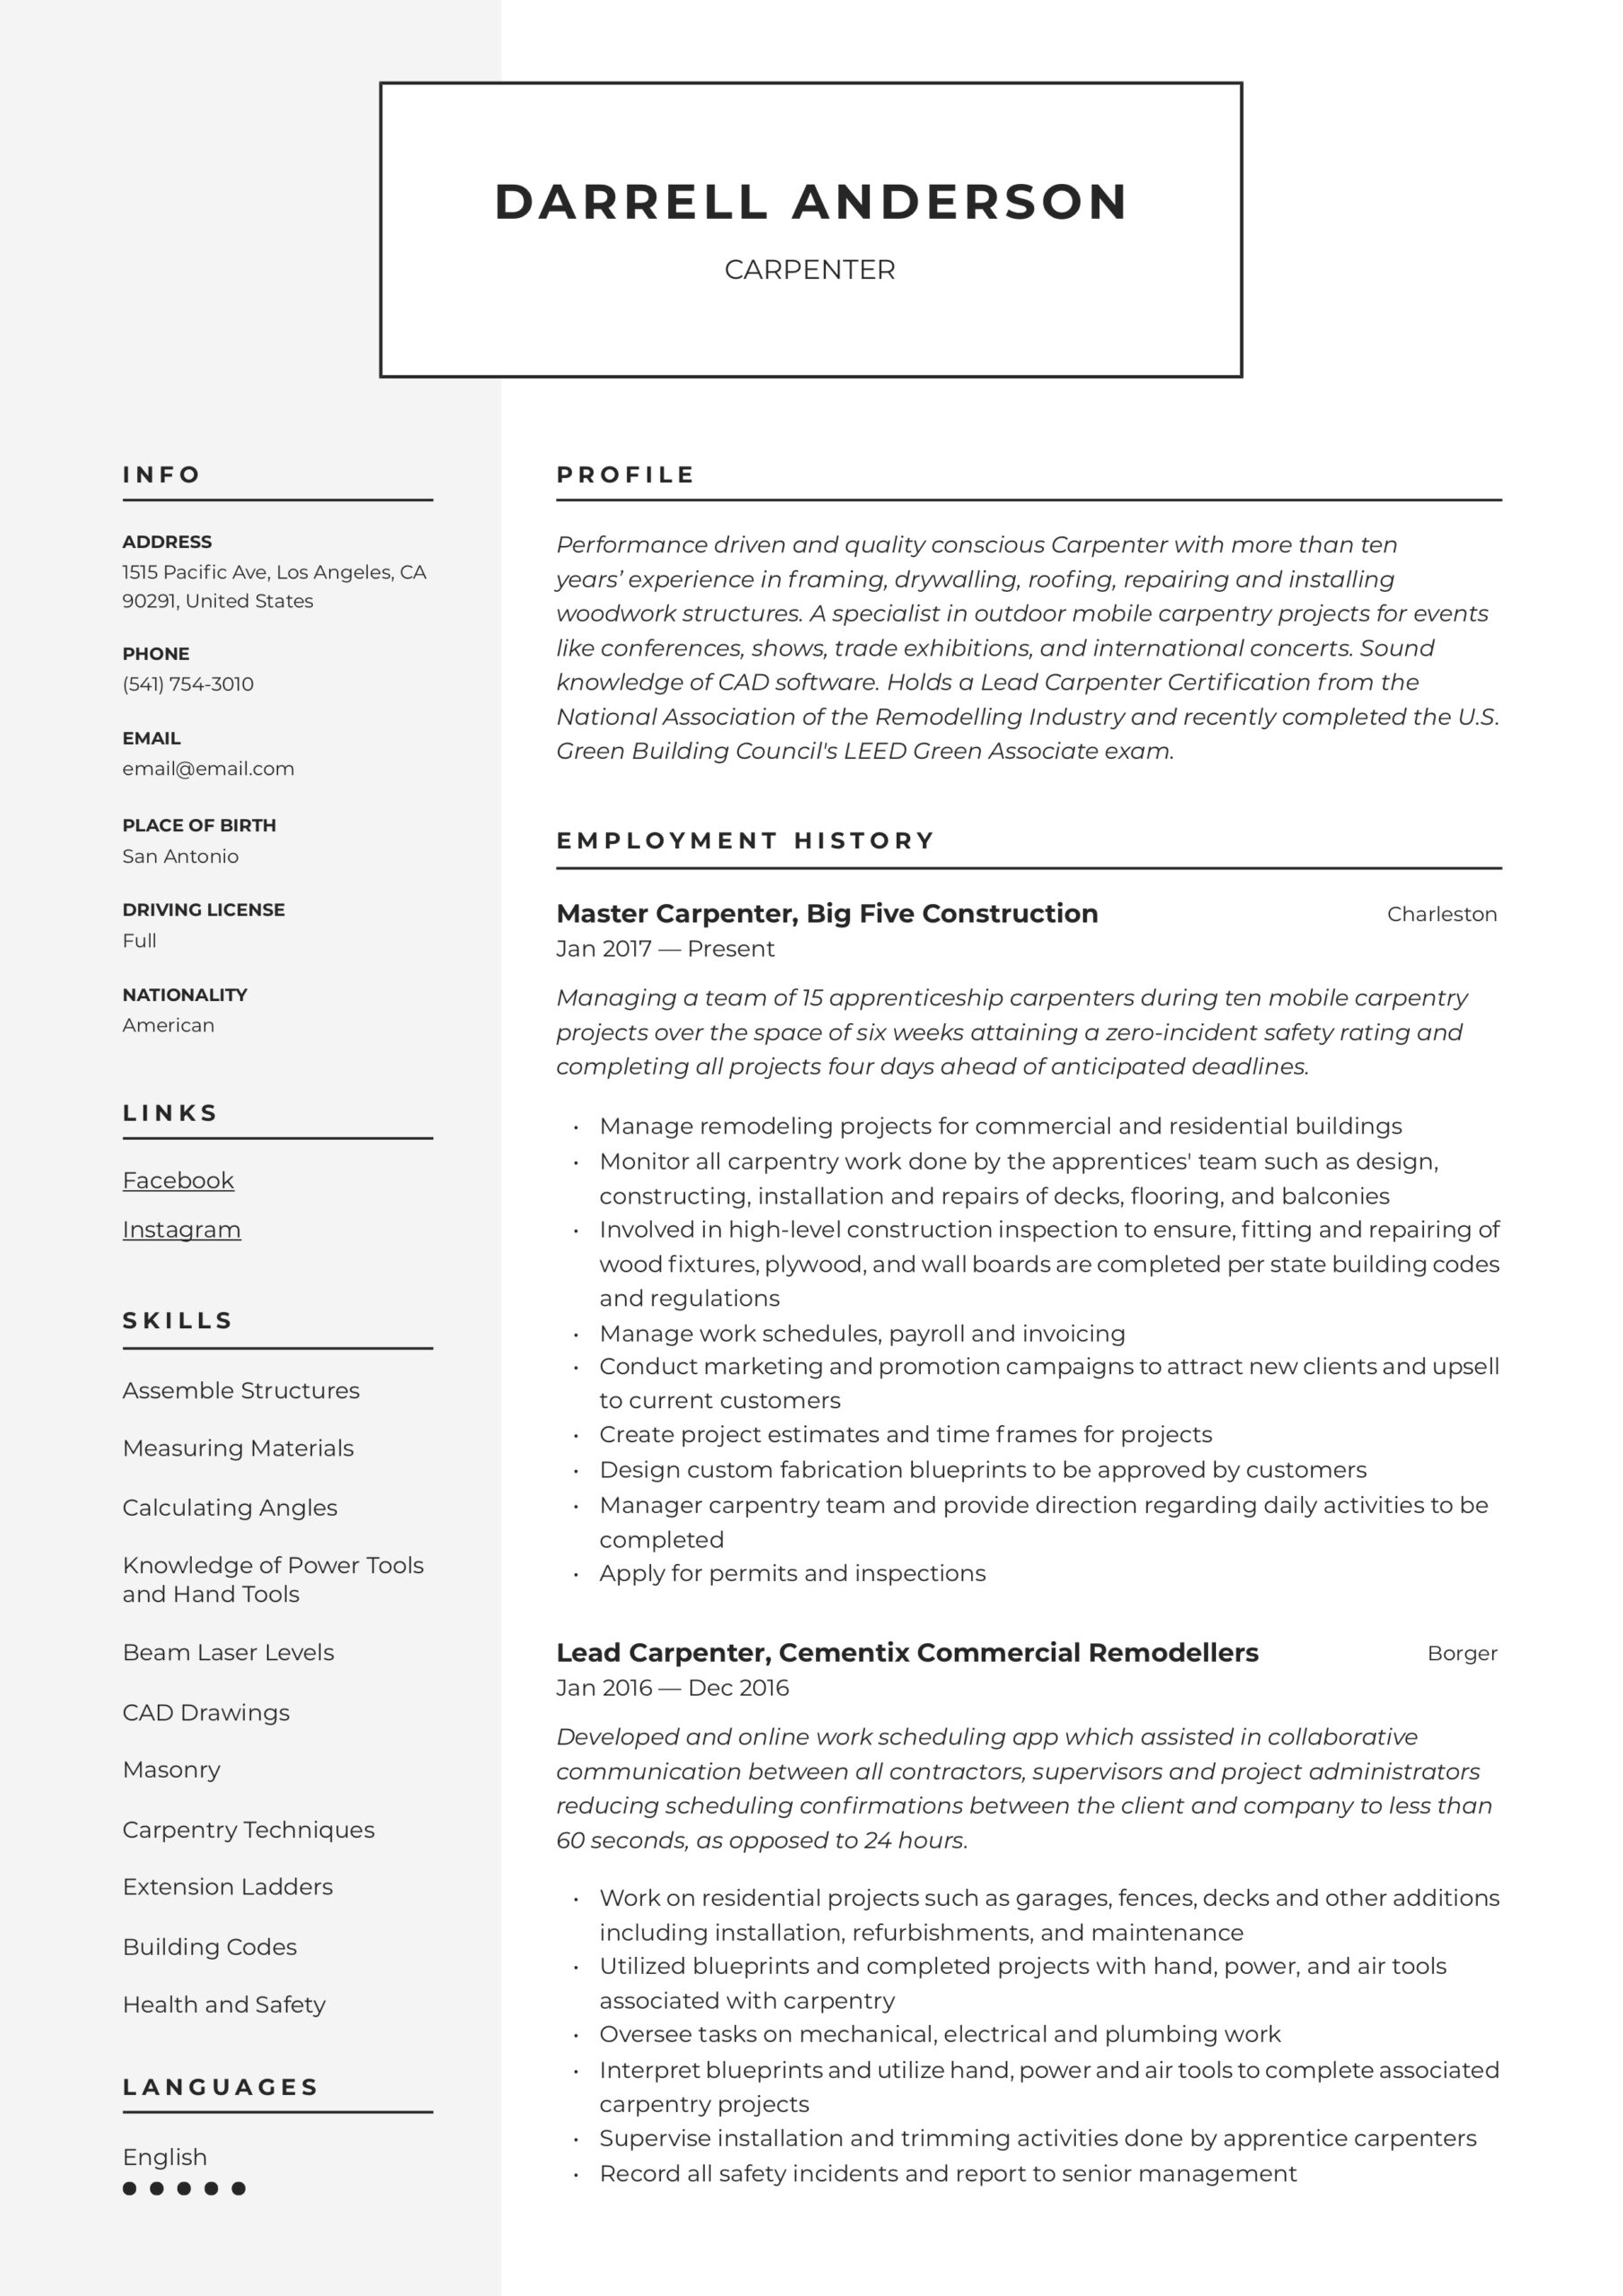 carpenter resume writing guide examples job description for cna qualifications designer Resume Carpenter Job Description For Resume